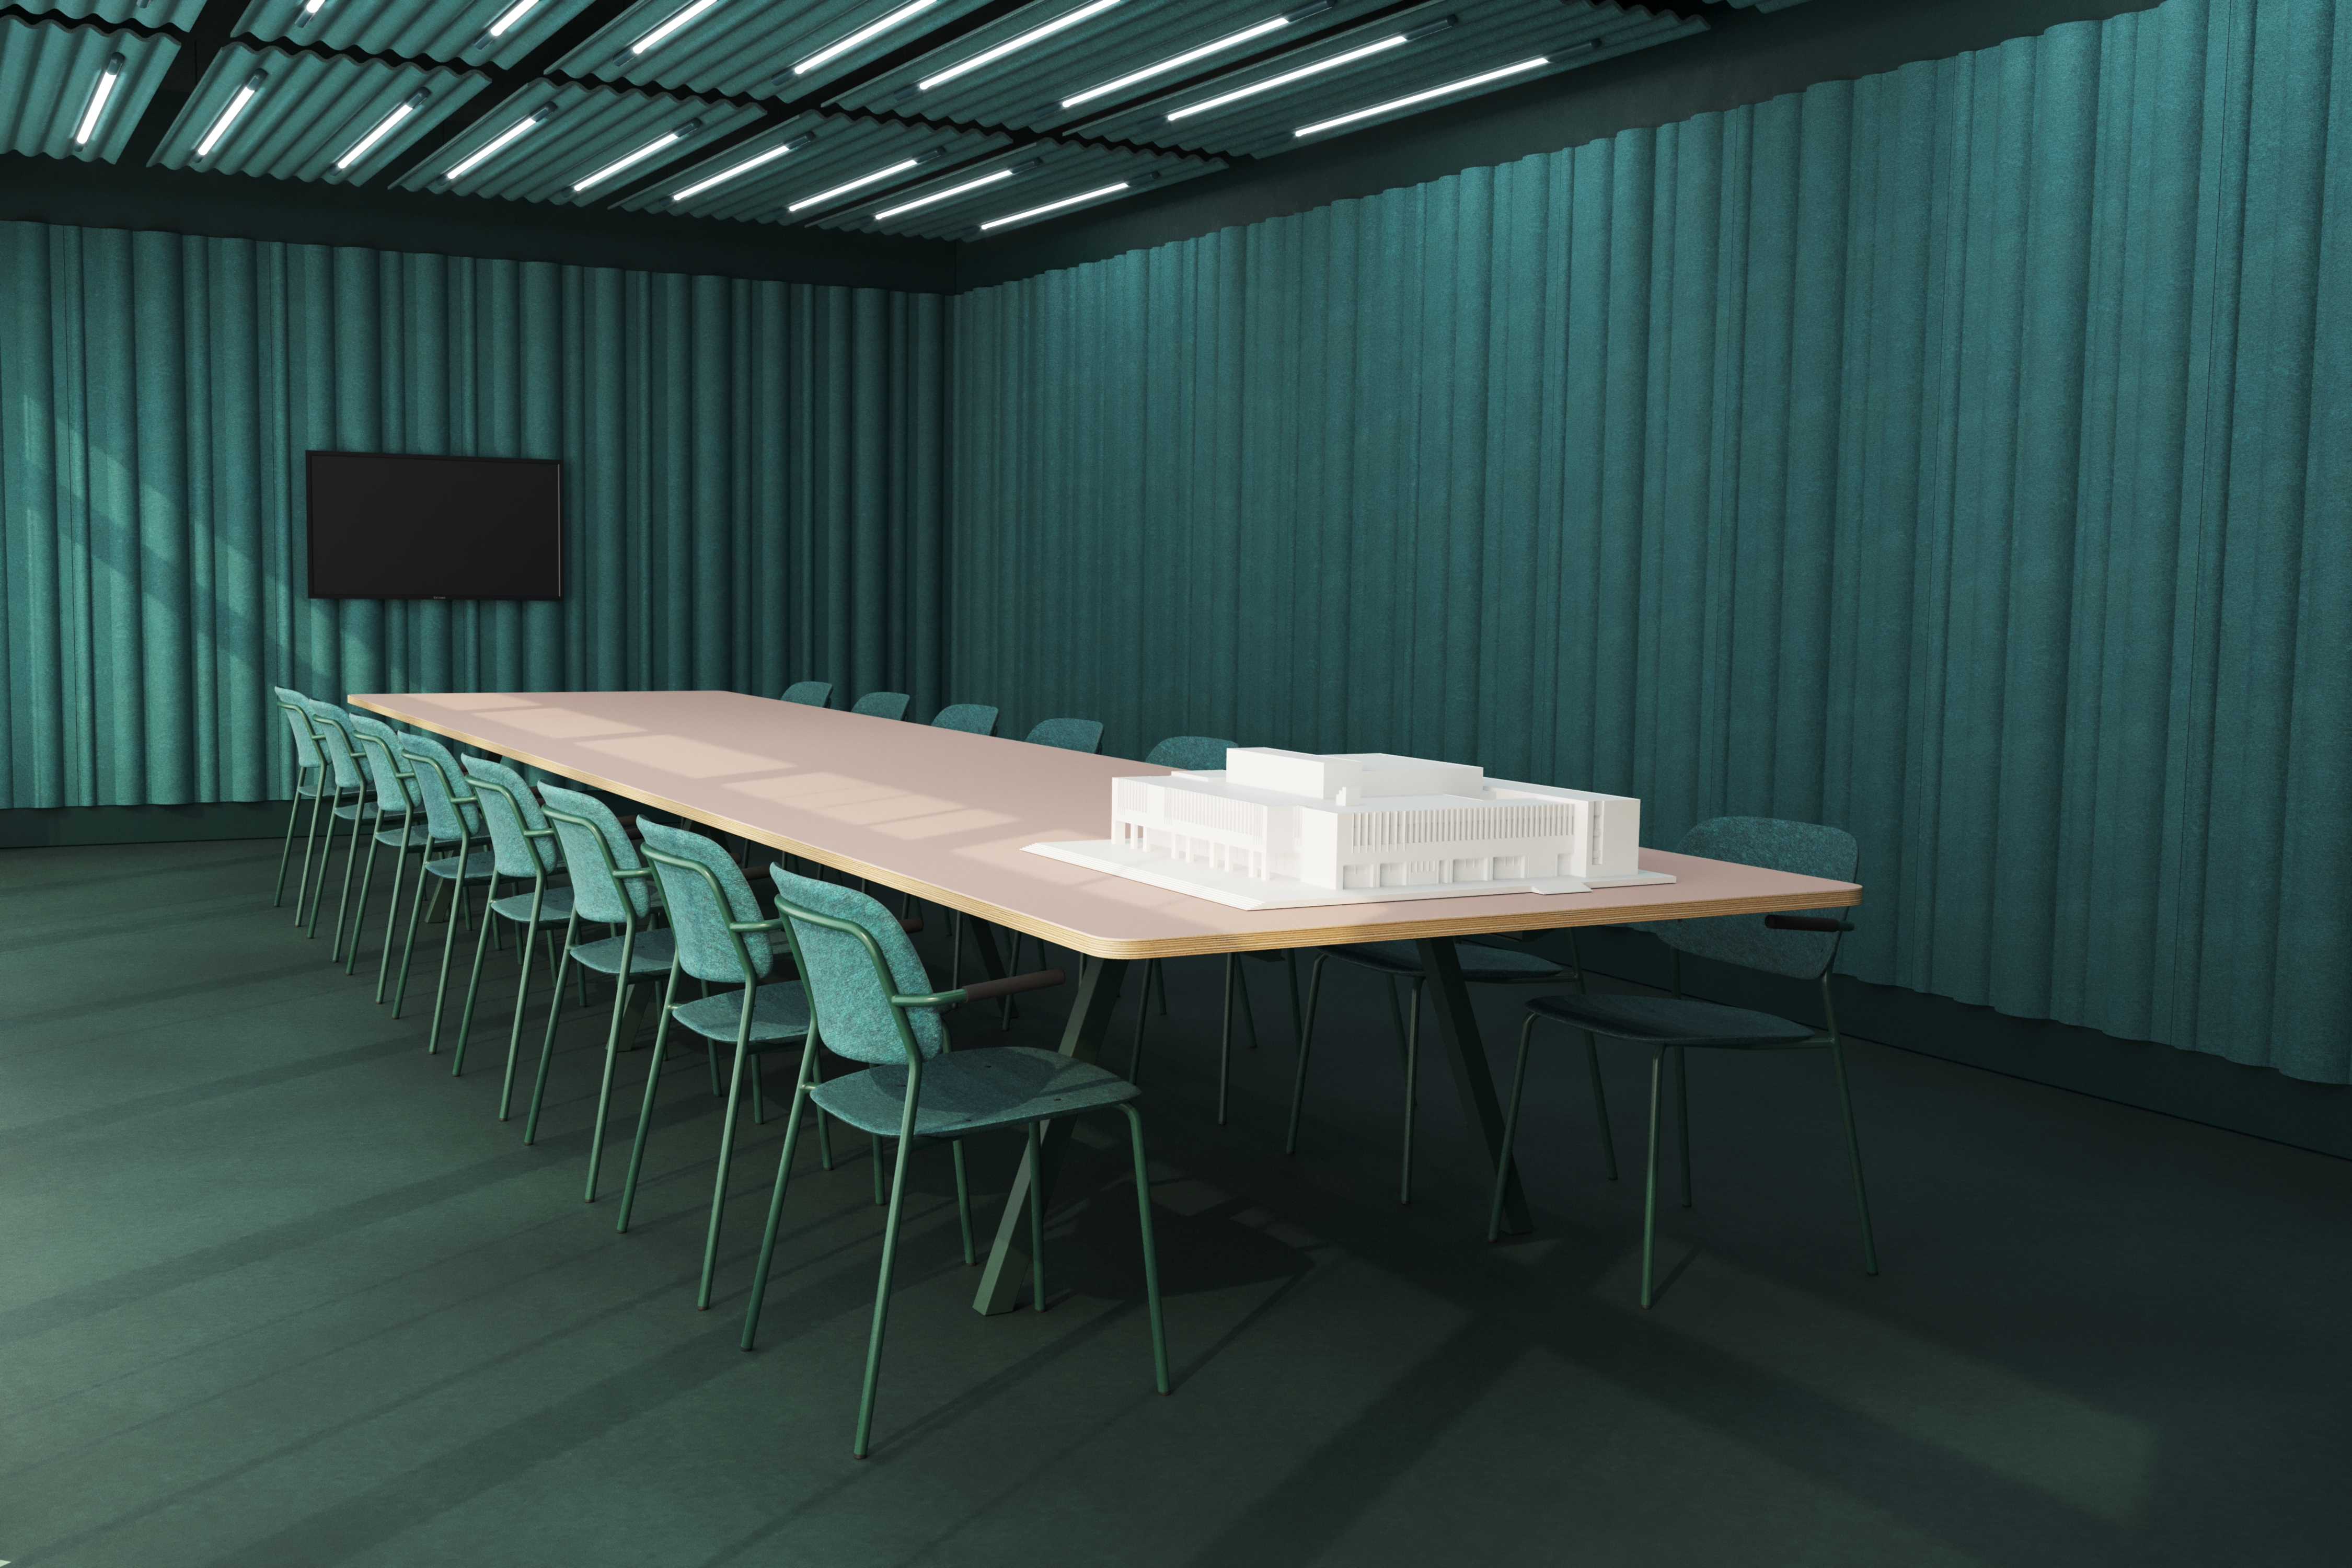 Mute Fit won the 2020 Archpaper Award